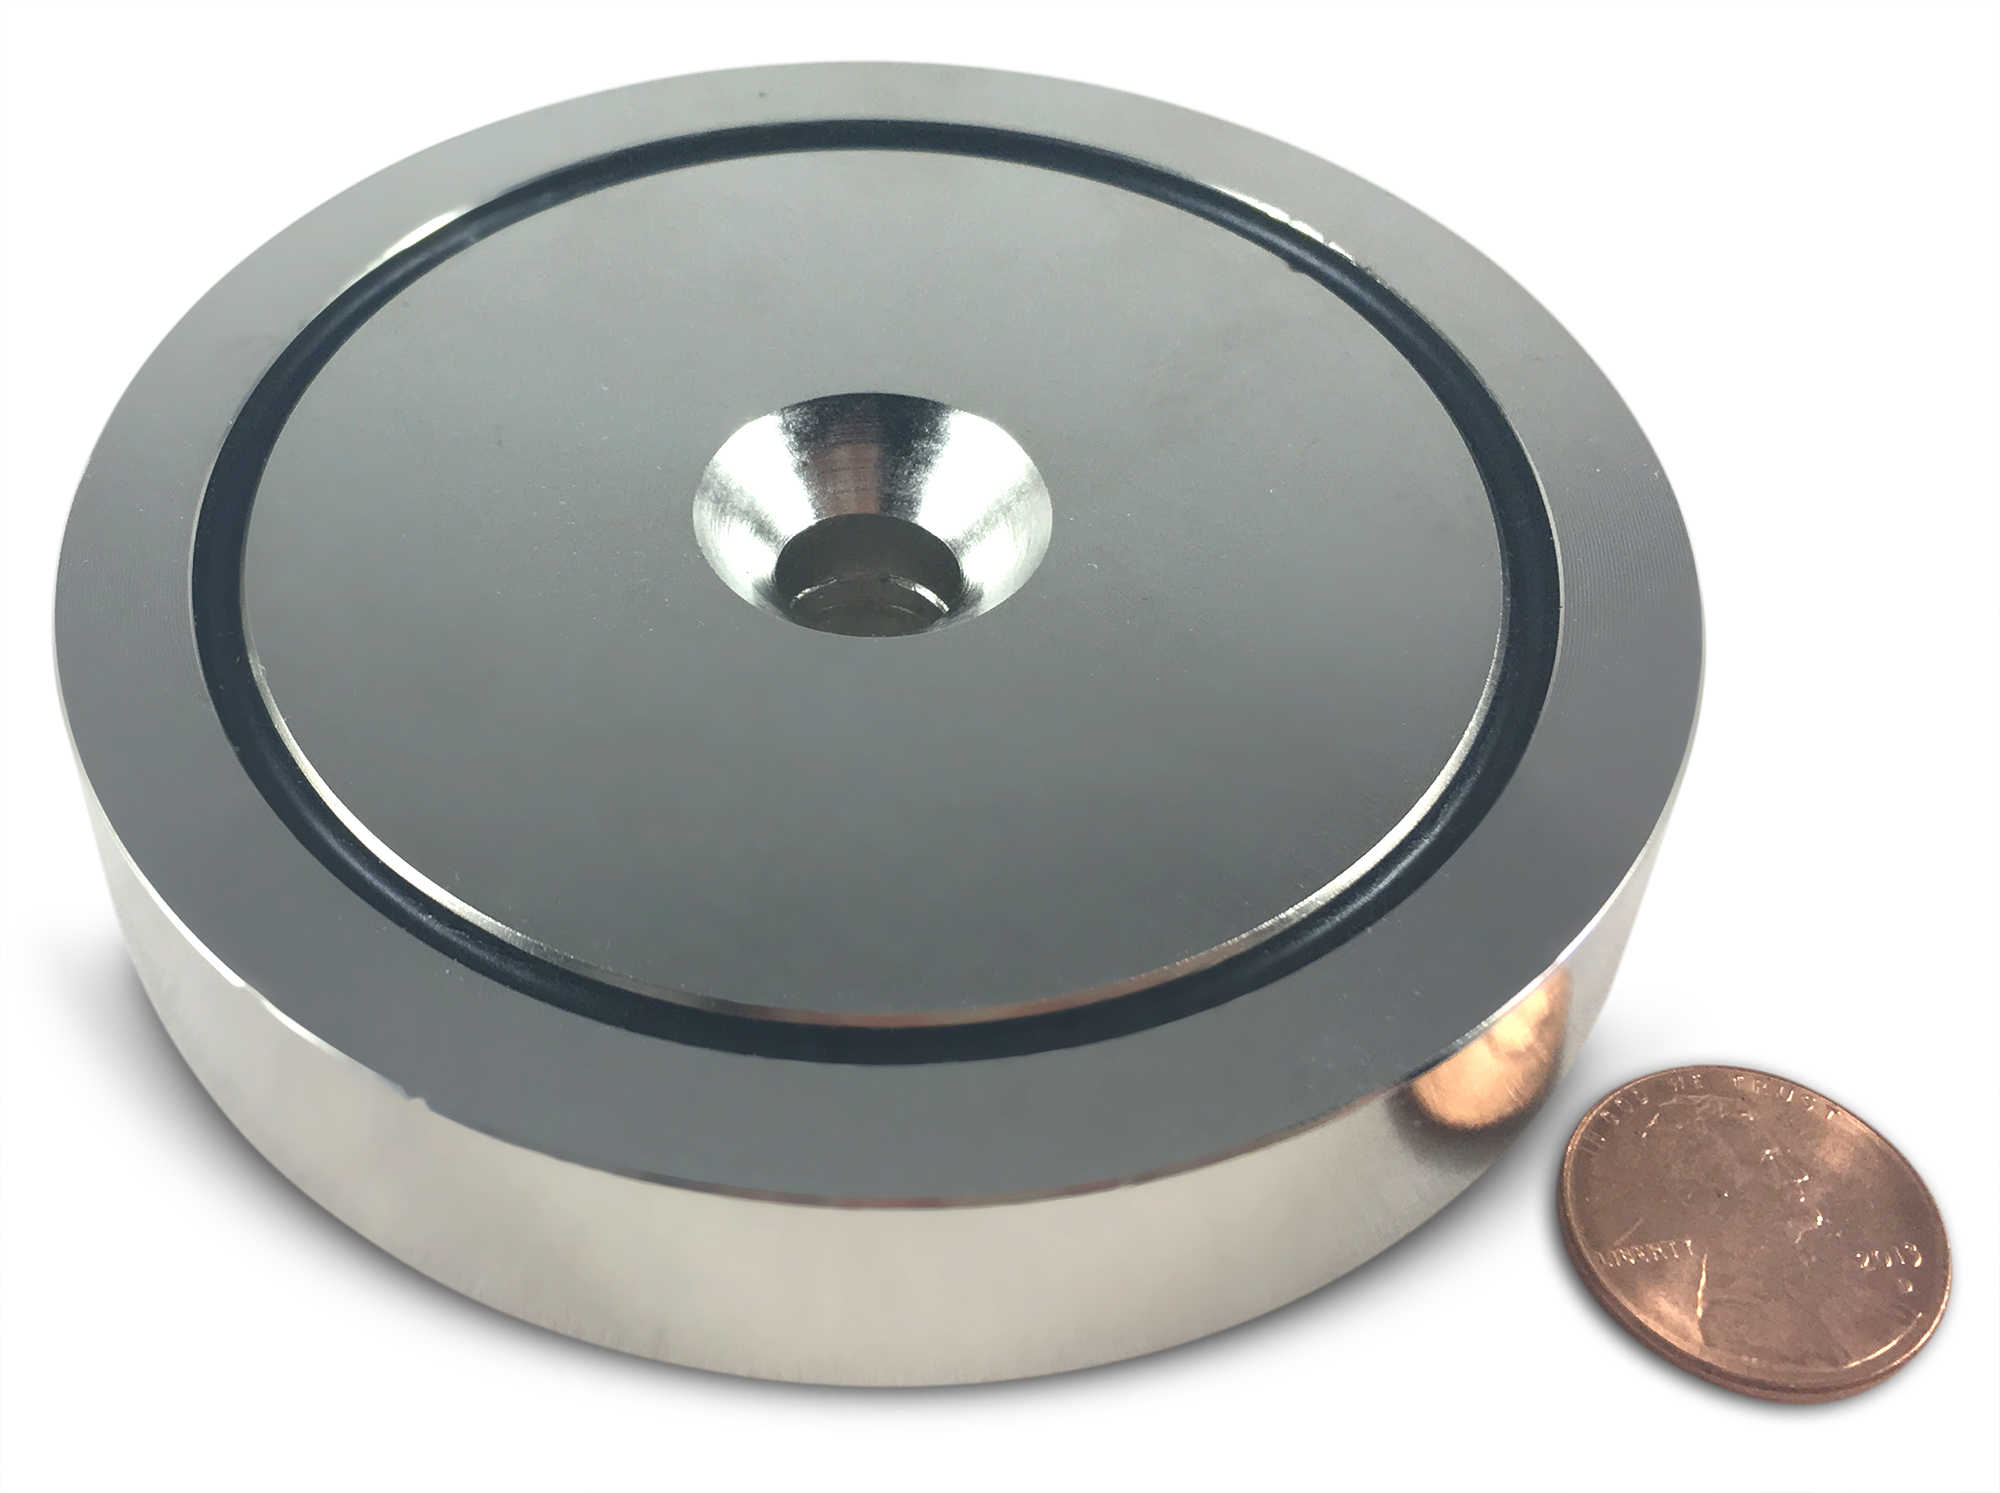 500 LBS Pulling Force, 3.54' Diameter - Round Neodymium Magnet with Countersunk Hole and Eyebolt